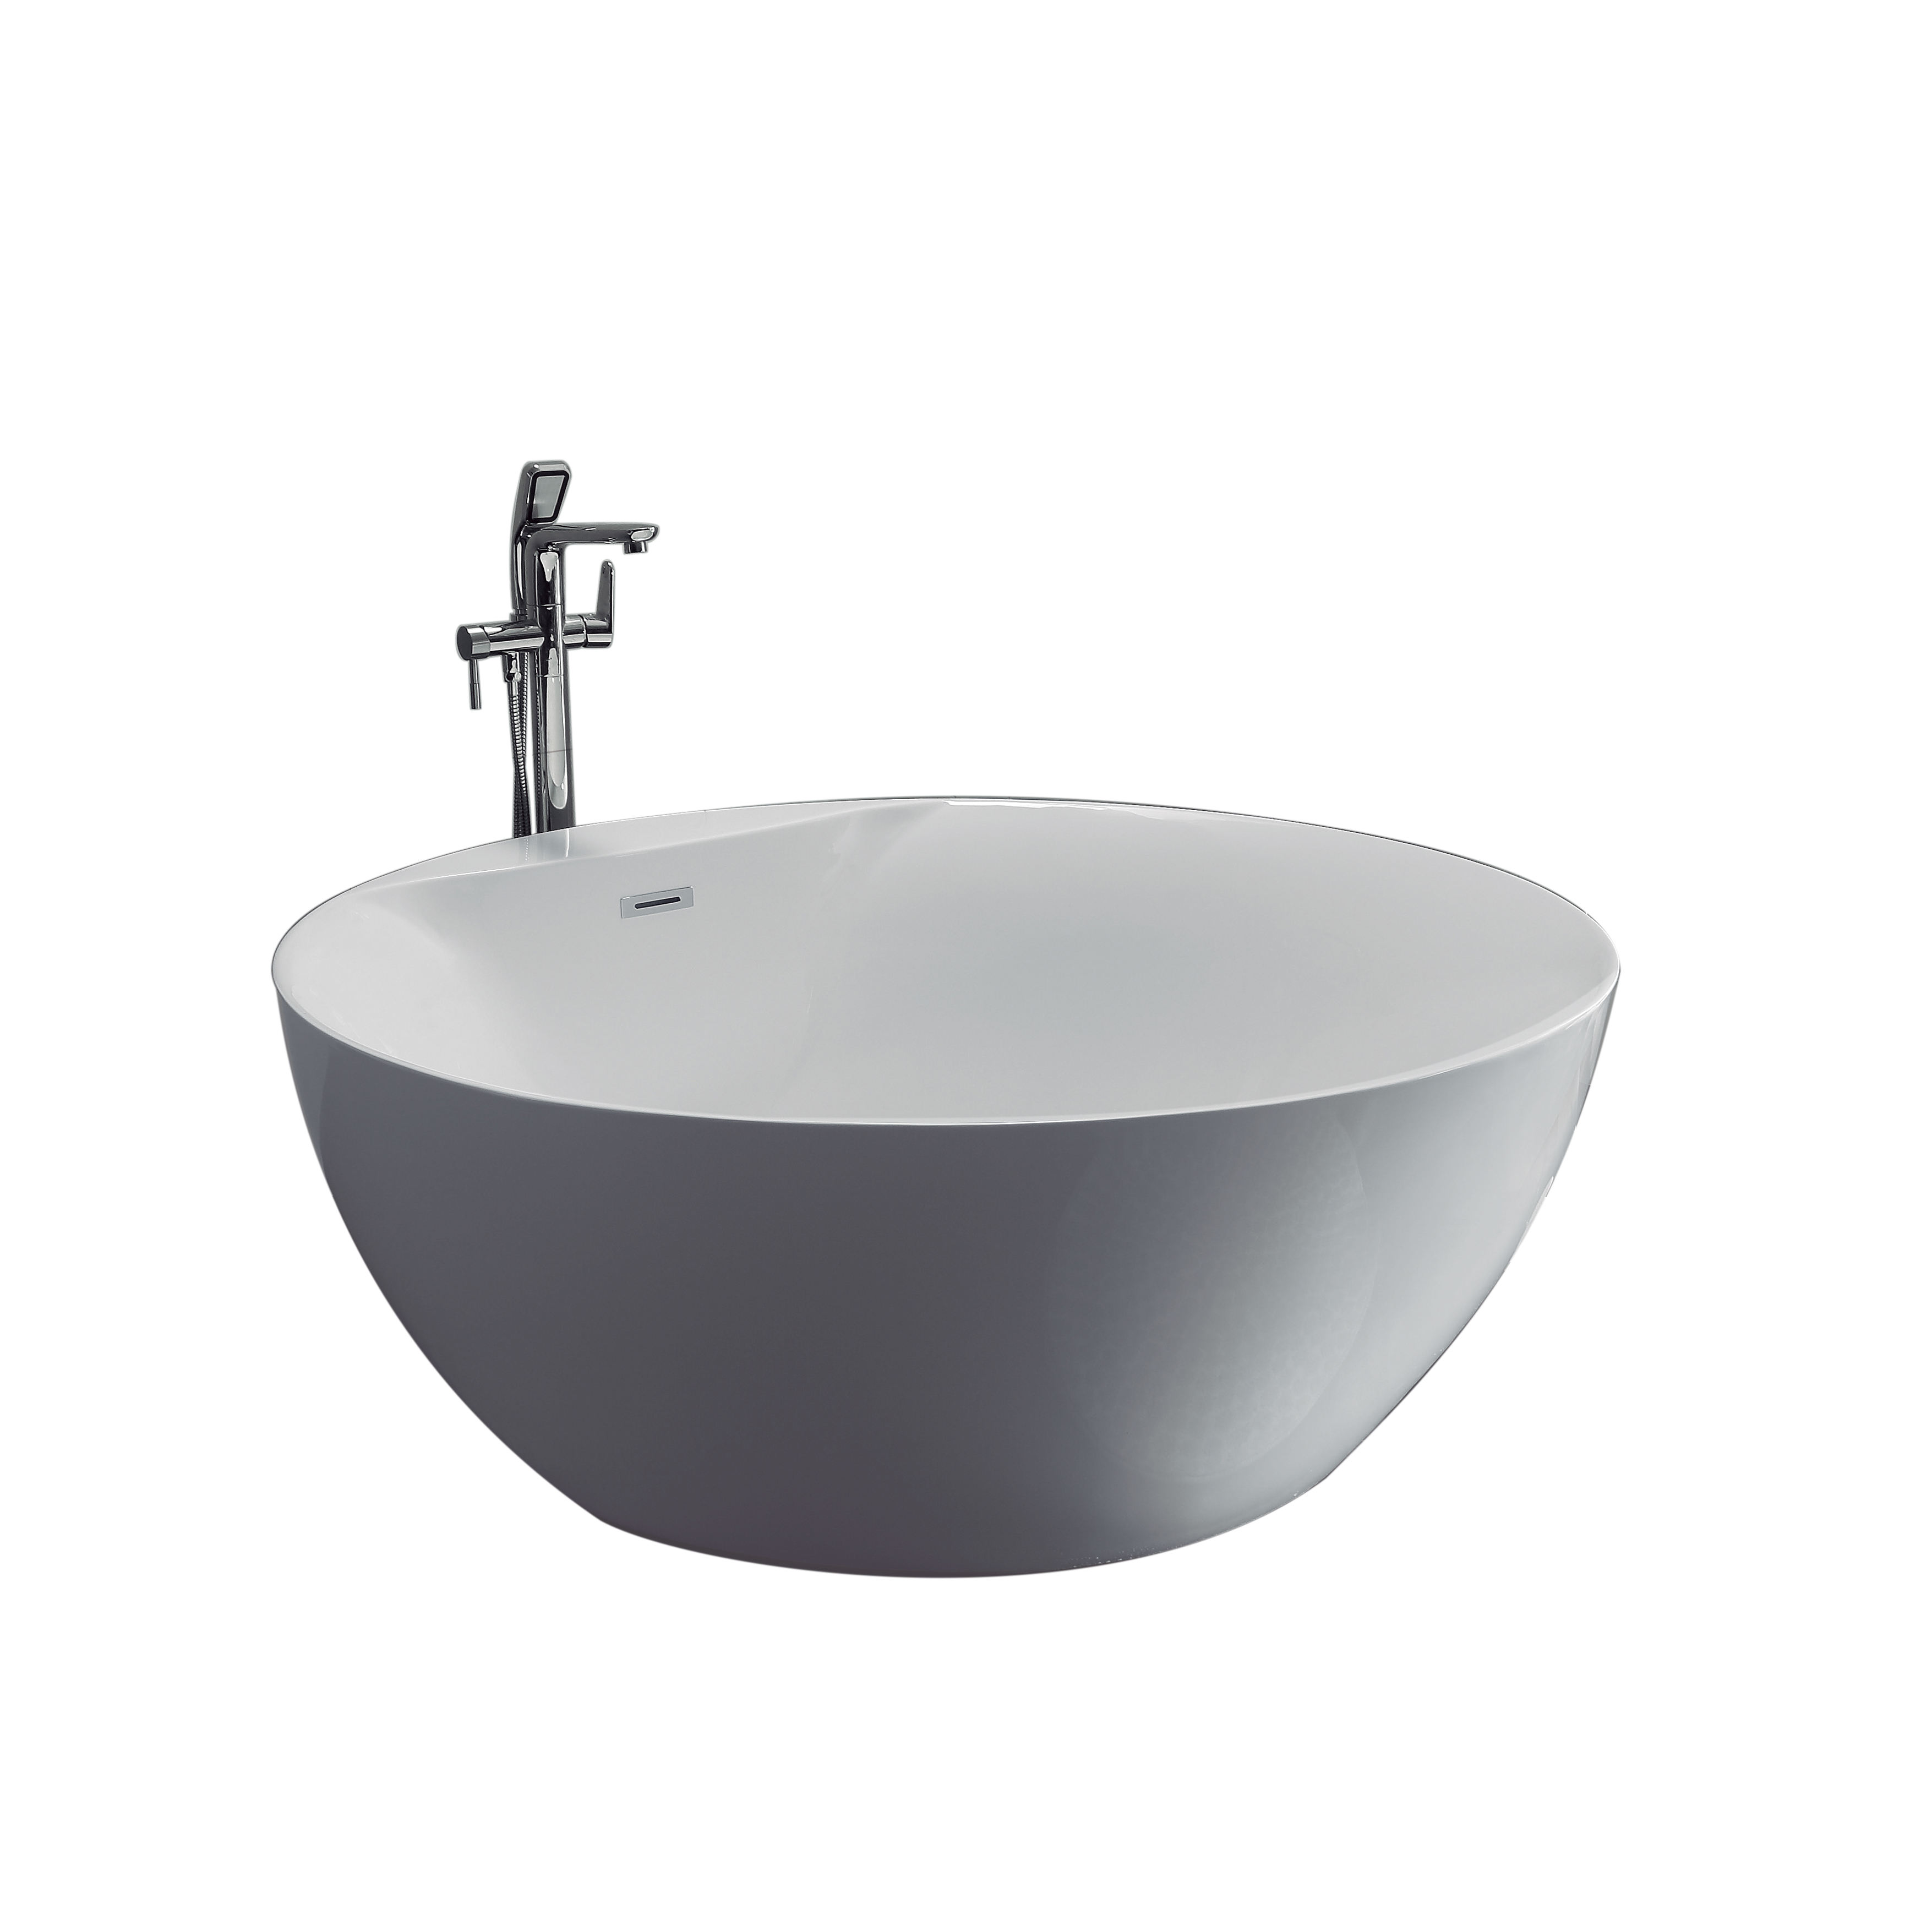 1500x1500 Round Bowl White Acrylic Freestanding Bathtub Optional with Faucets